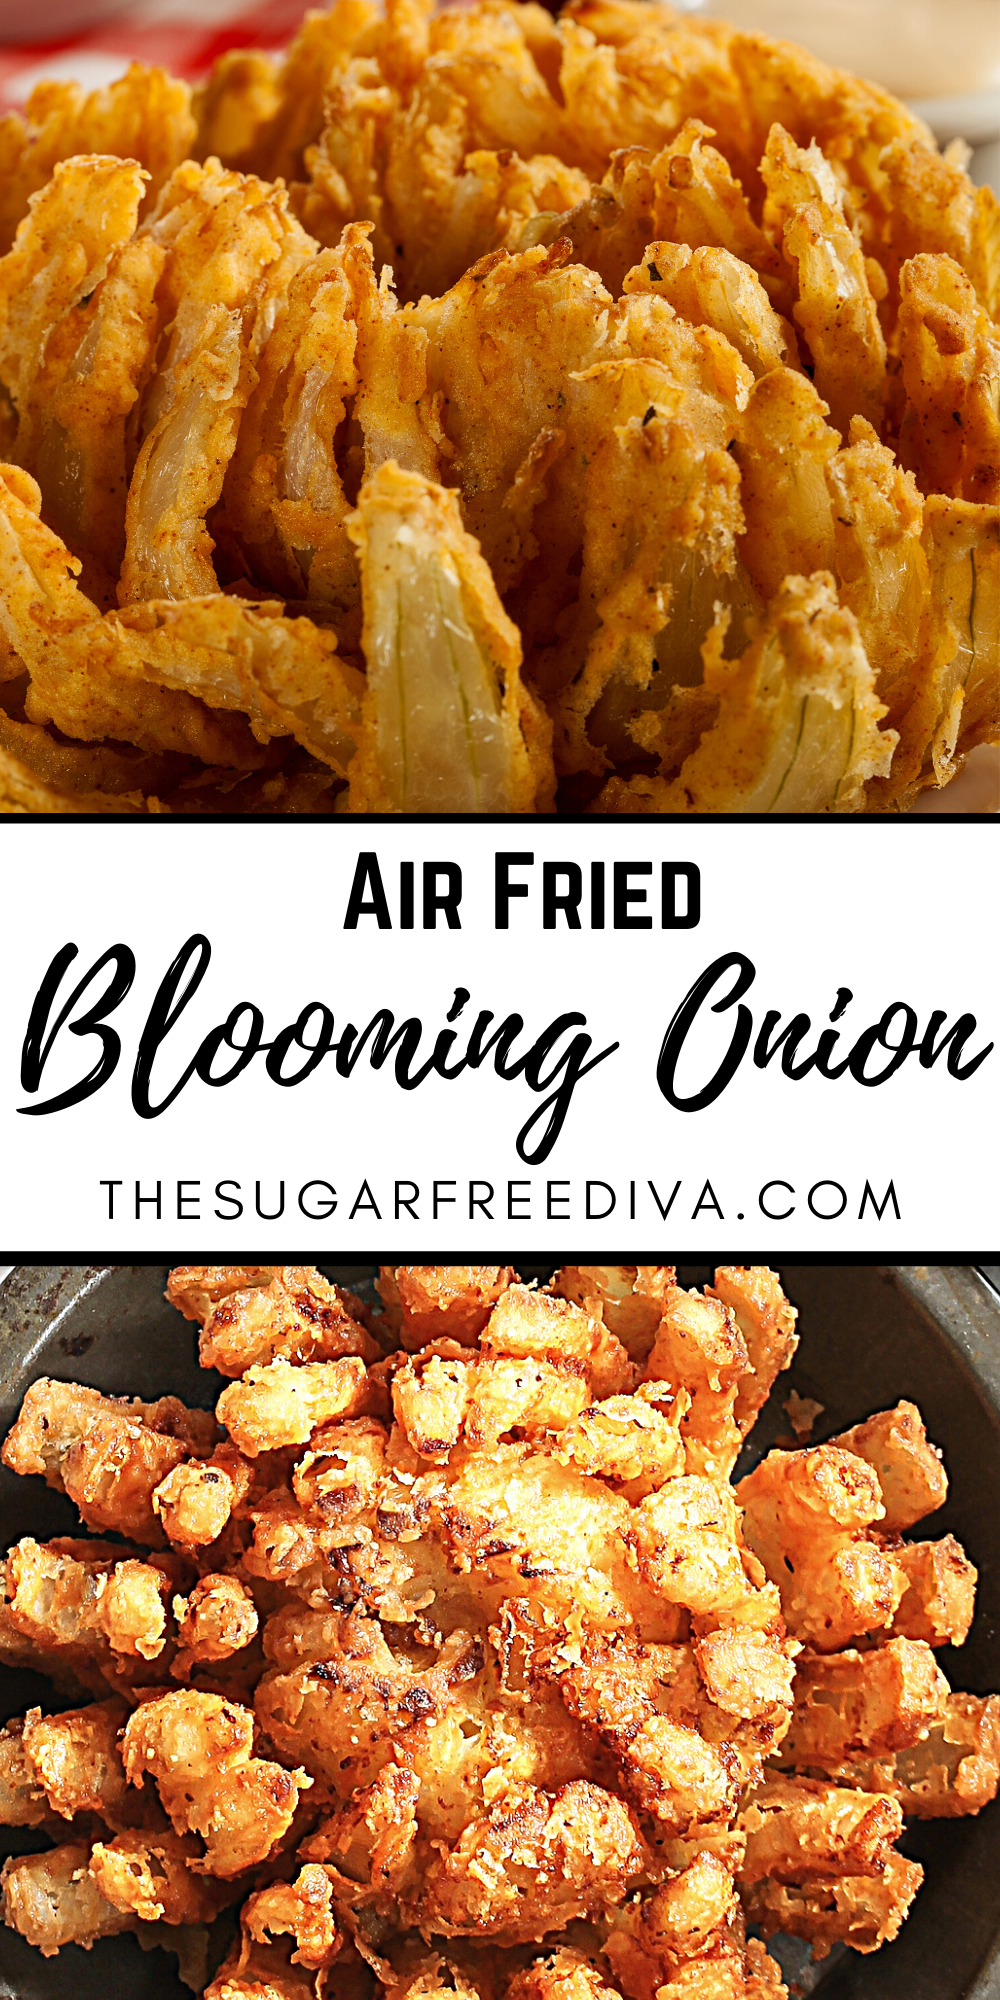 Air Fried Blooming Onion that Tastes Great!